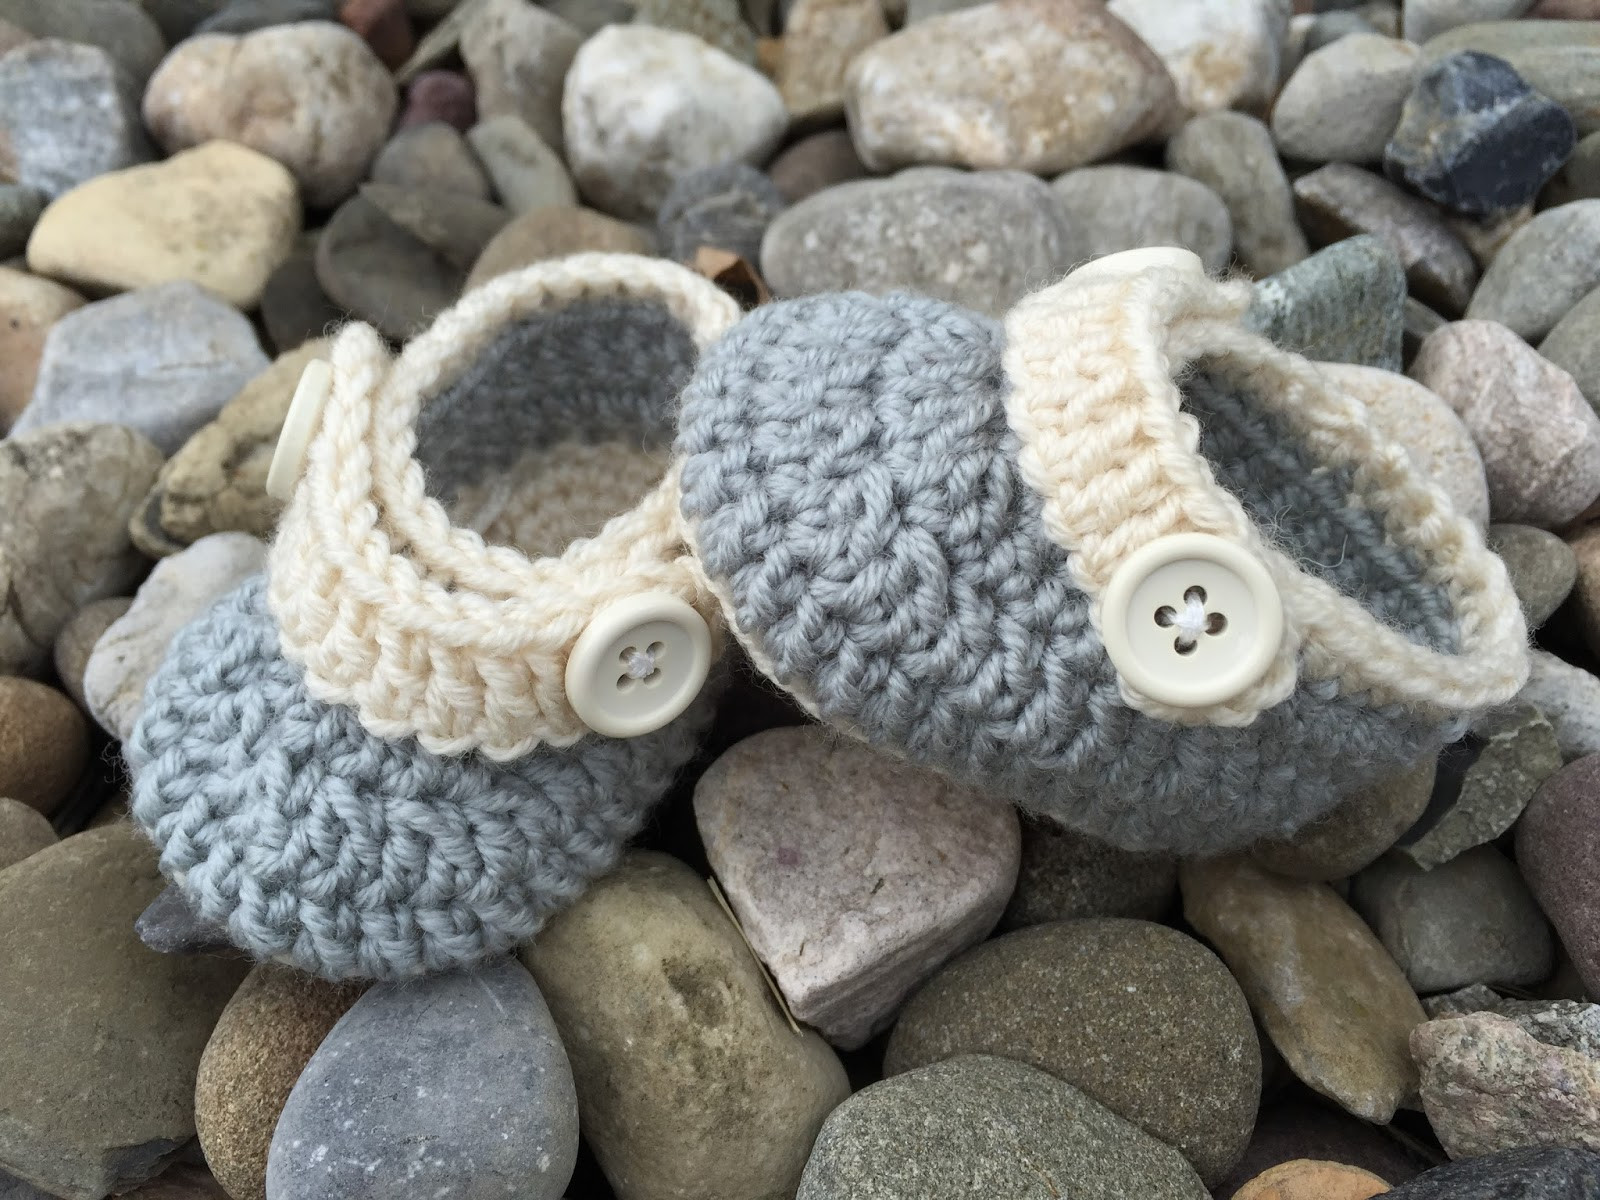 Free Crochet Patterns for Baby Shoes Best Of 25 Cutest Free Crochet Baby Booties Patterns Of Wonderful 50 Photos Free Crochet Patterns for Baby Shoes